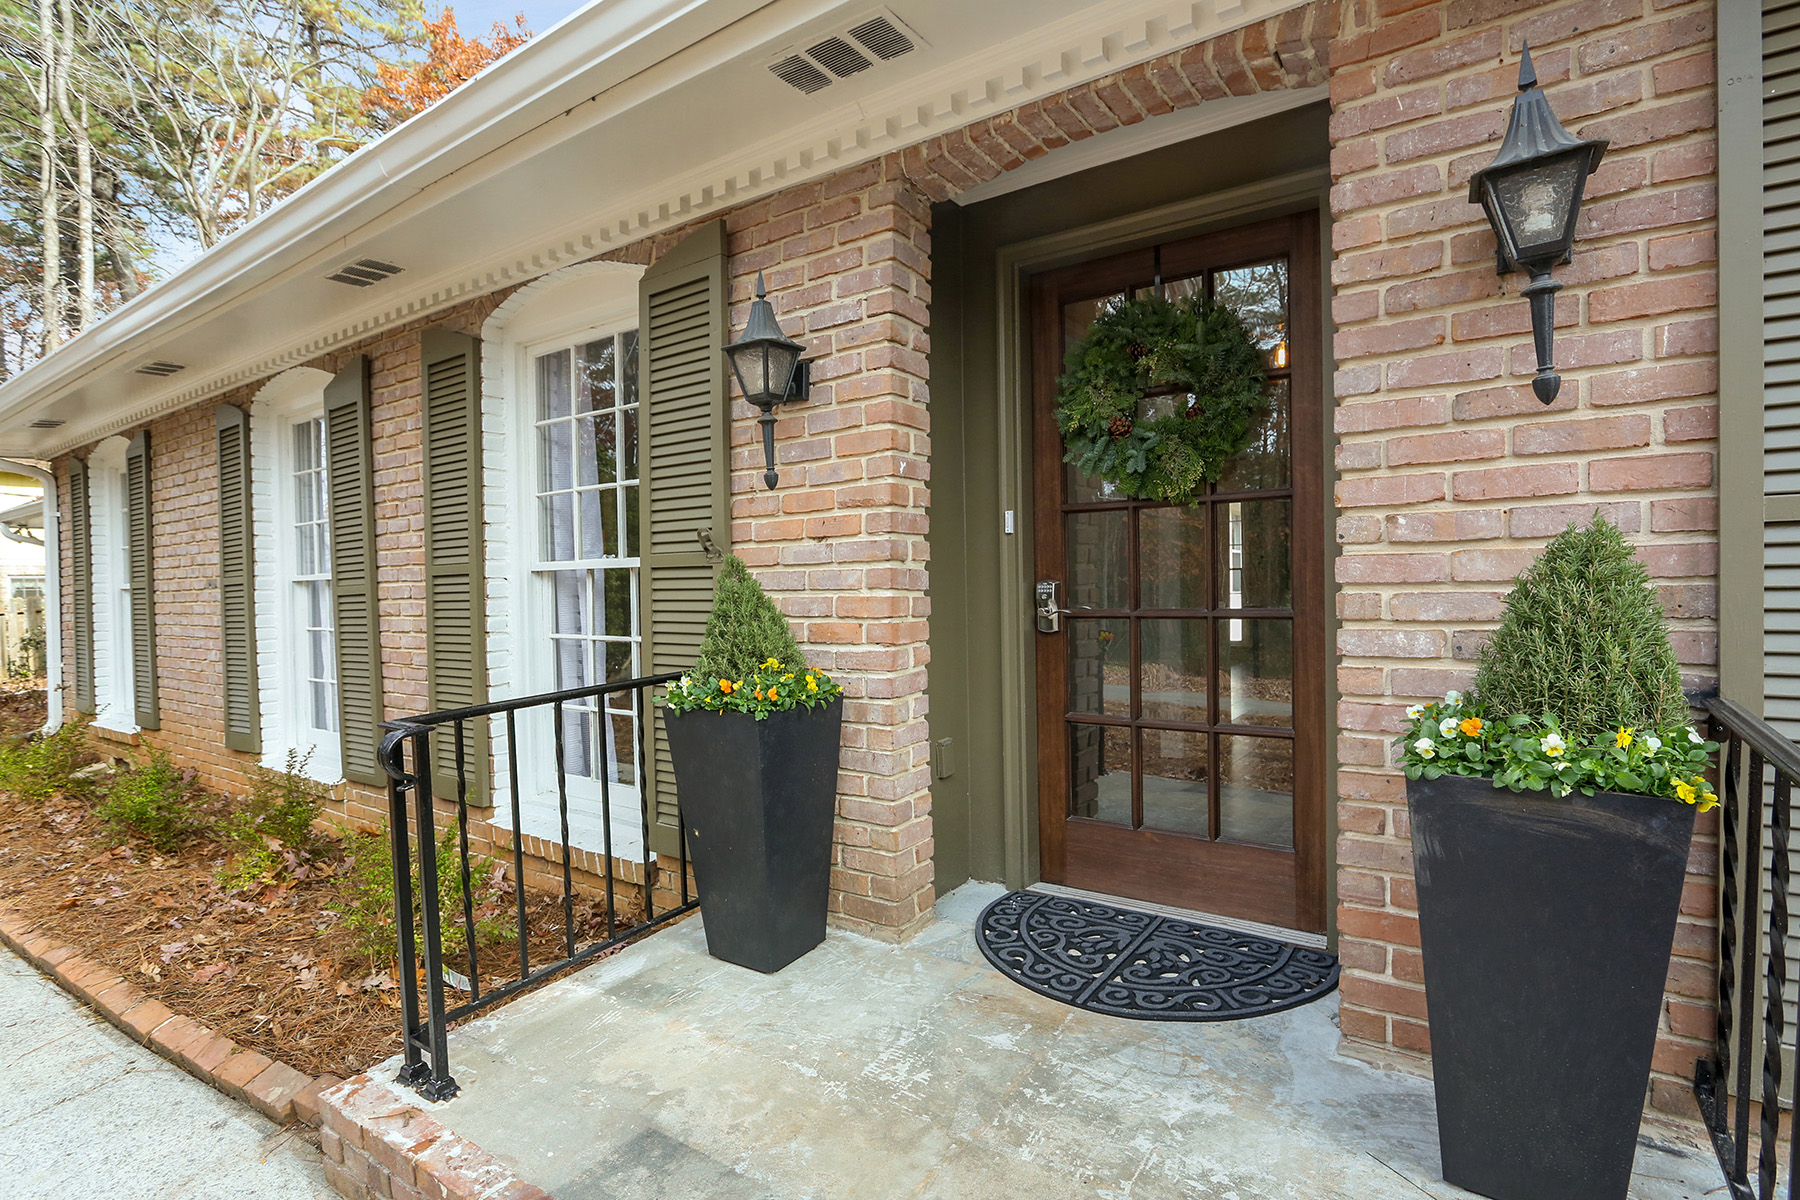 Additional photo for property listing at Completely Renovated Ranch Charmer in Prime Dunwoody North Neighborhood! 2743 Laurelwood Rd Atlanta, Georgia 30306 United States